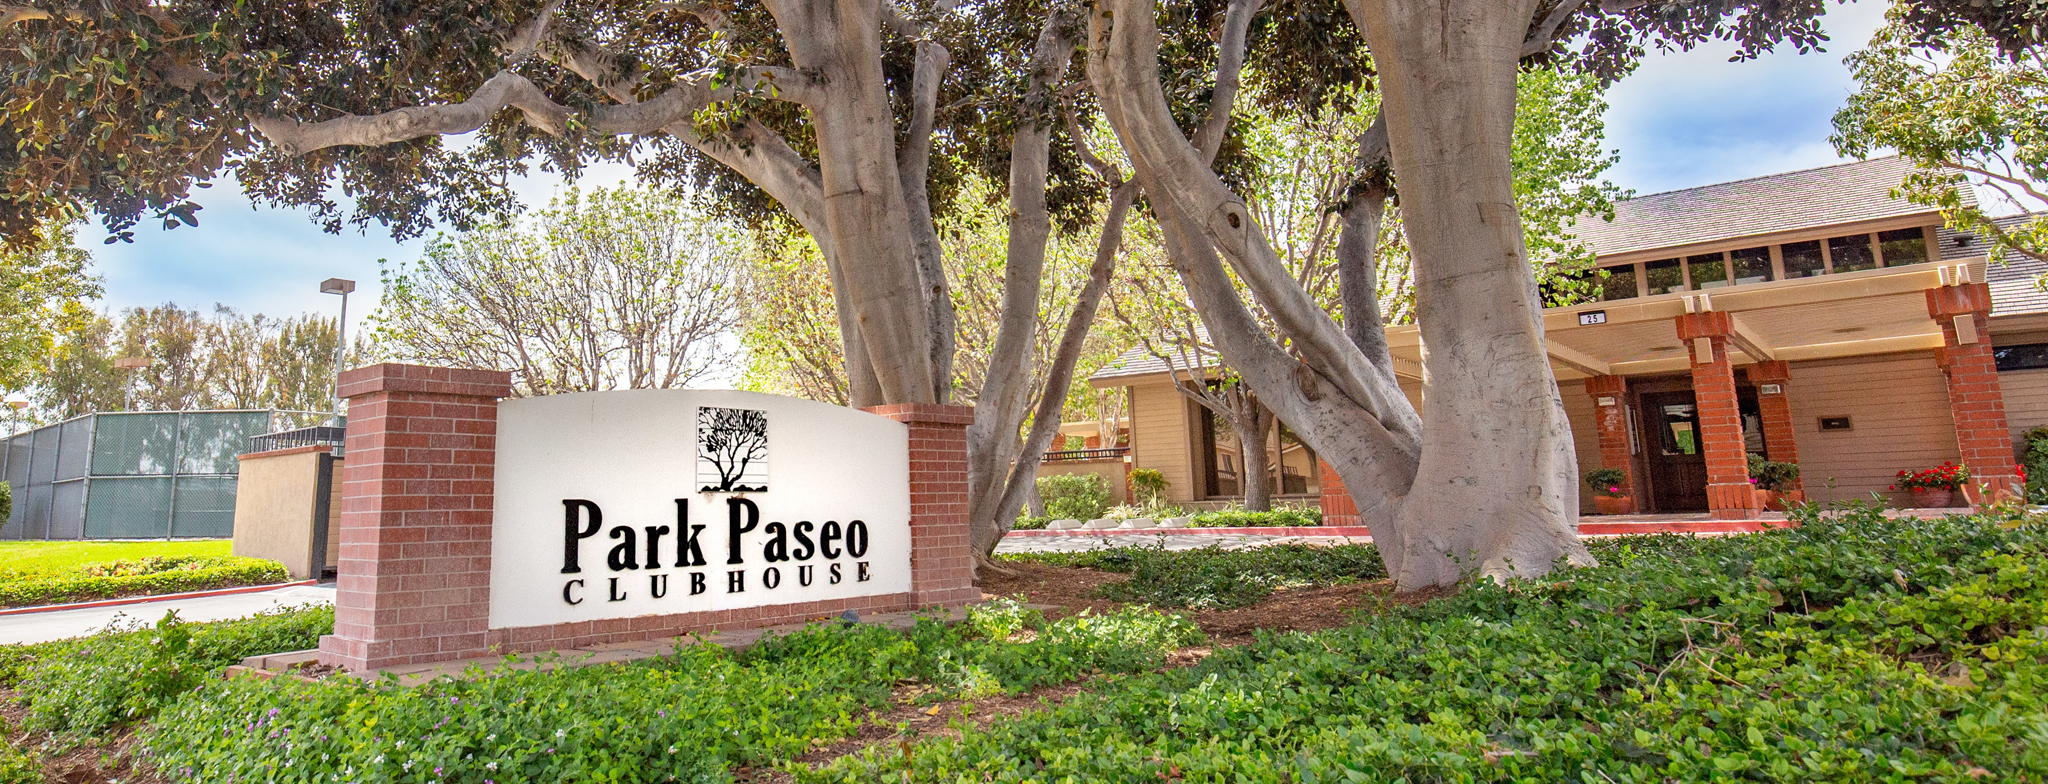 Welcome to Park Paseo Community!